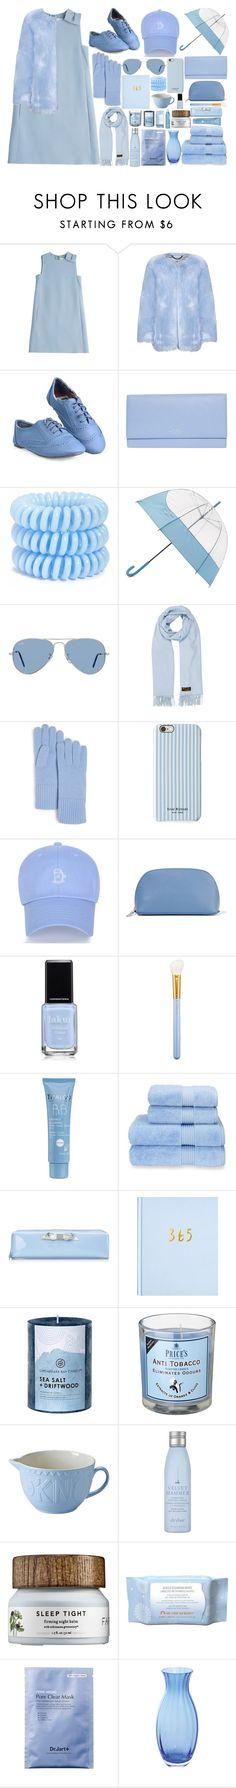 """""""Pack and Go: Milan"""" by sillyyivyy ❤ liked on Polyvore featuring Valentino, Smythson, Invisibobble, Hunter, Ray-Ban, Loro Piana, C by Bloomingdale's, Isaac Mizrahi, MAC Cosmetics and Thalgo"""